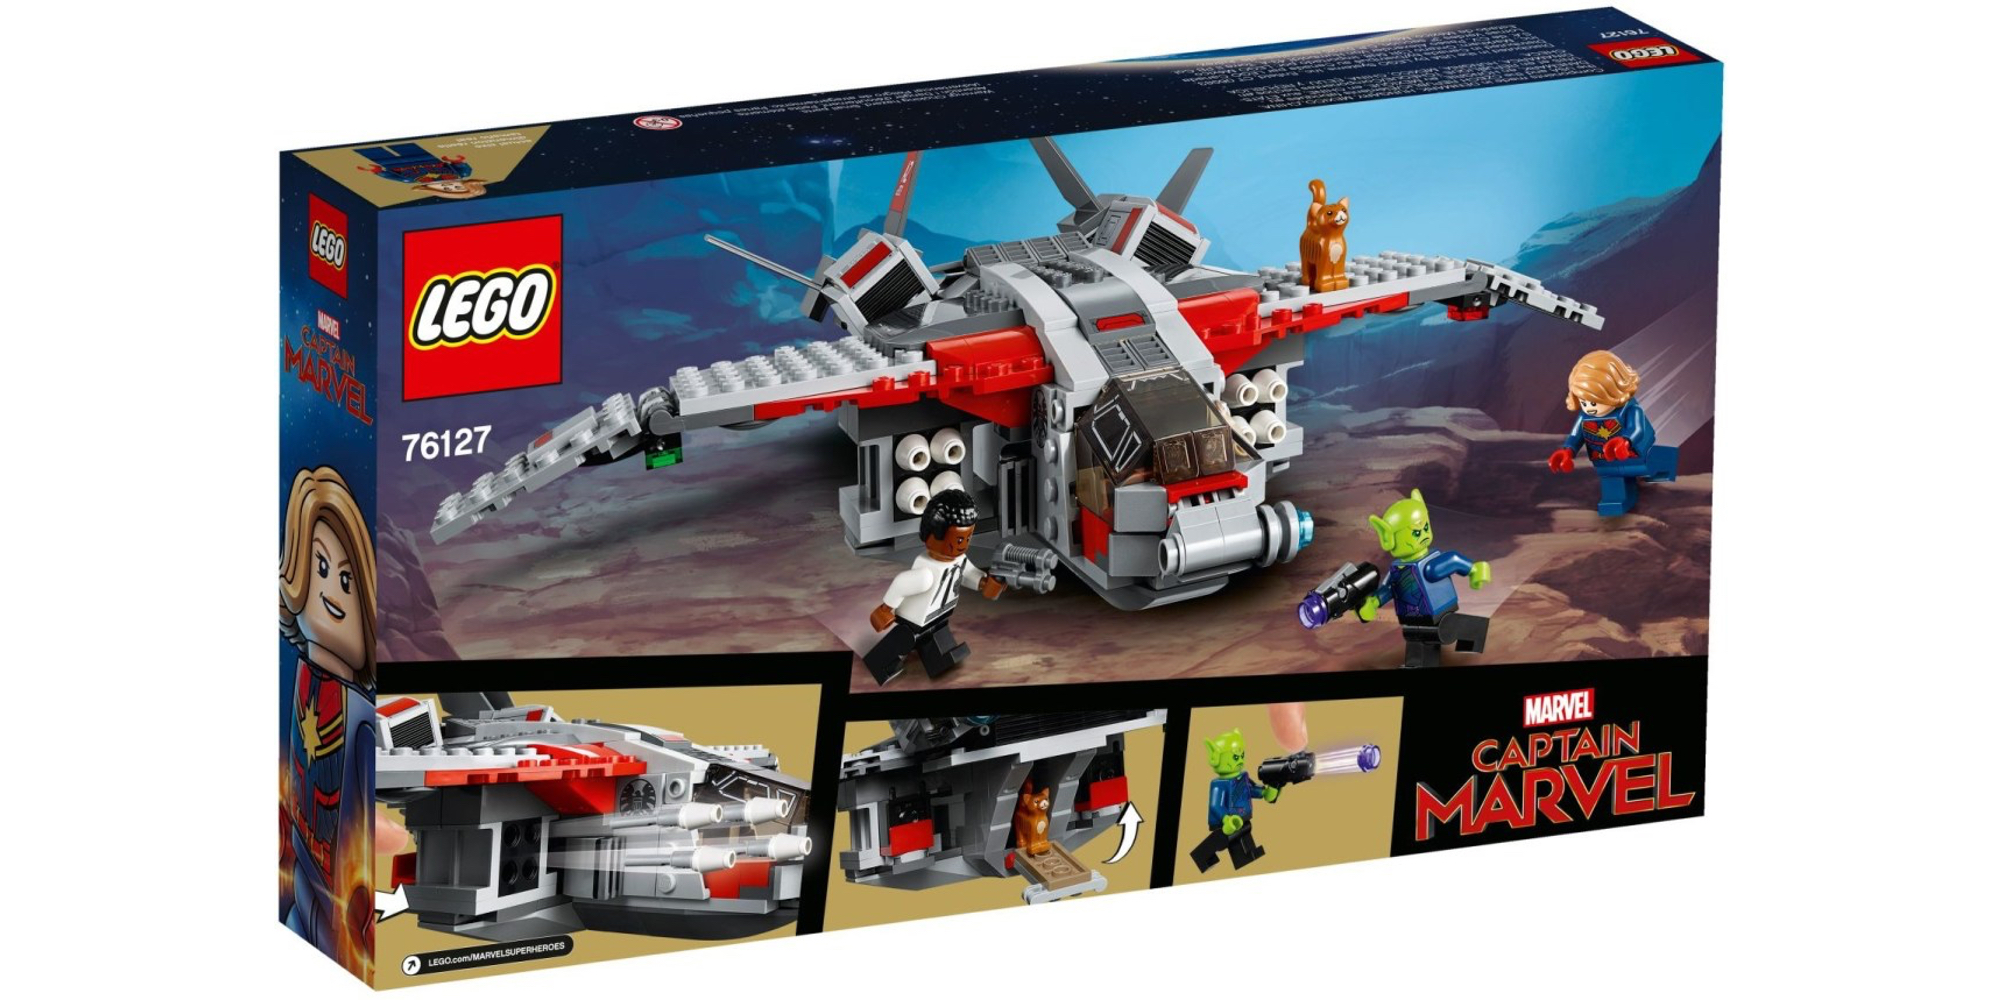 LEGO Captain Marvel Box Back